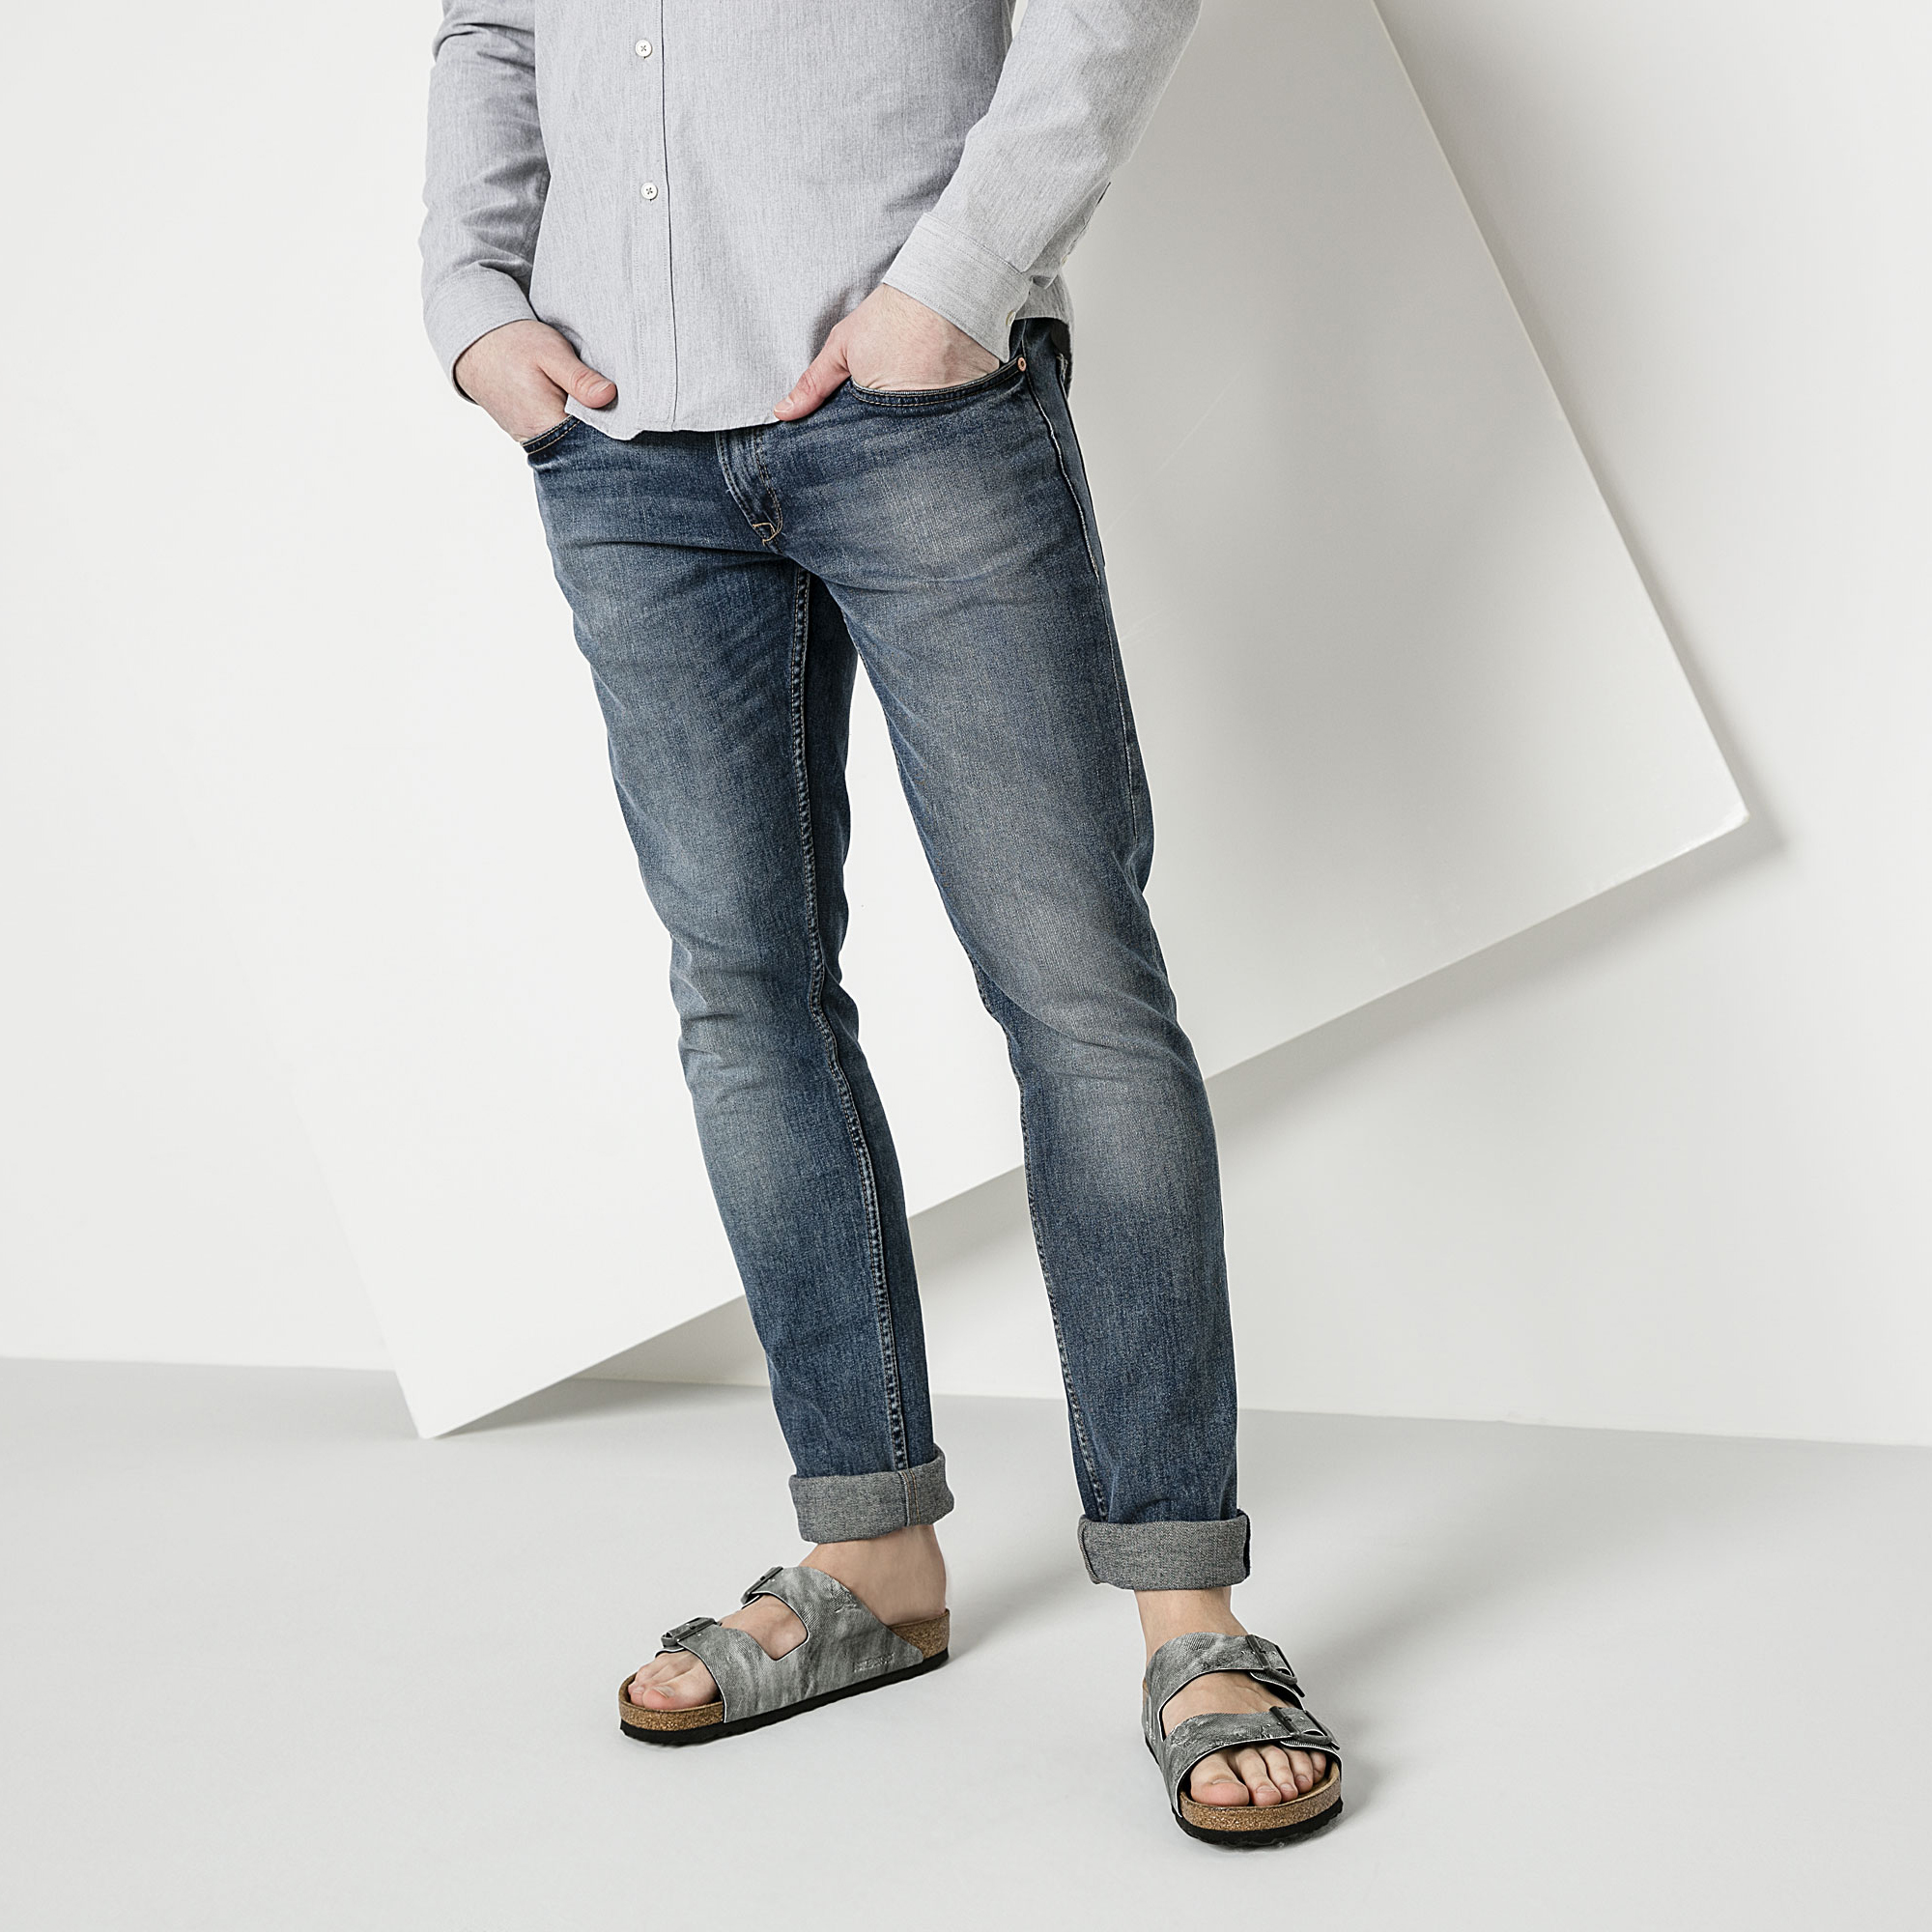 Arizona Birko Flor Jeans Washed Out Gray